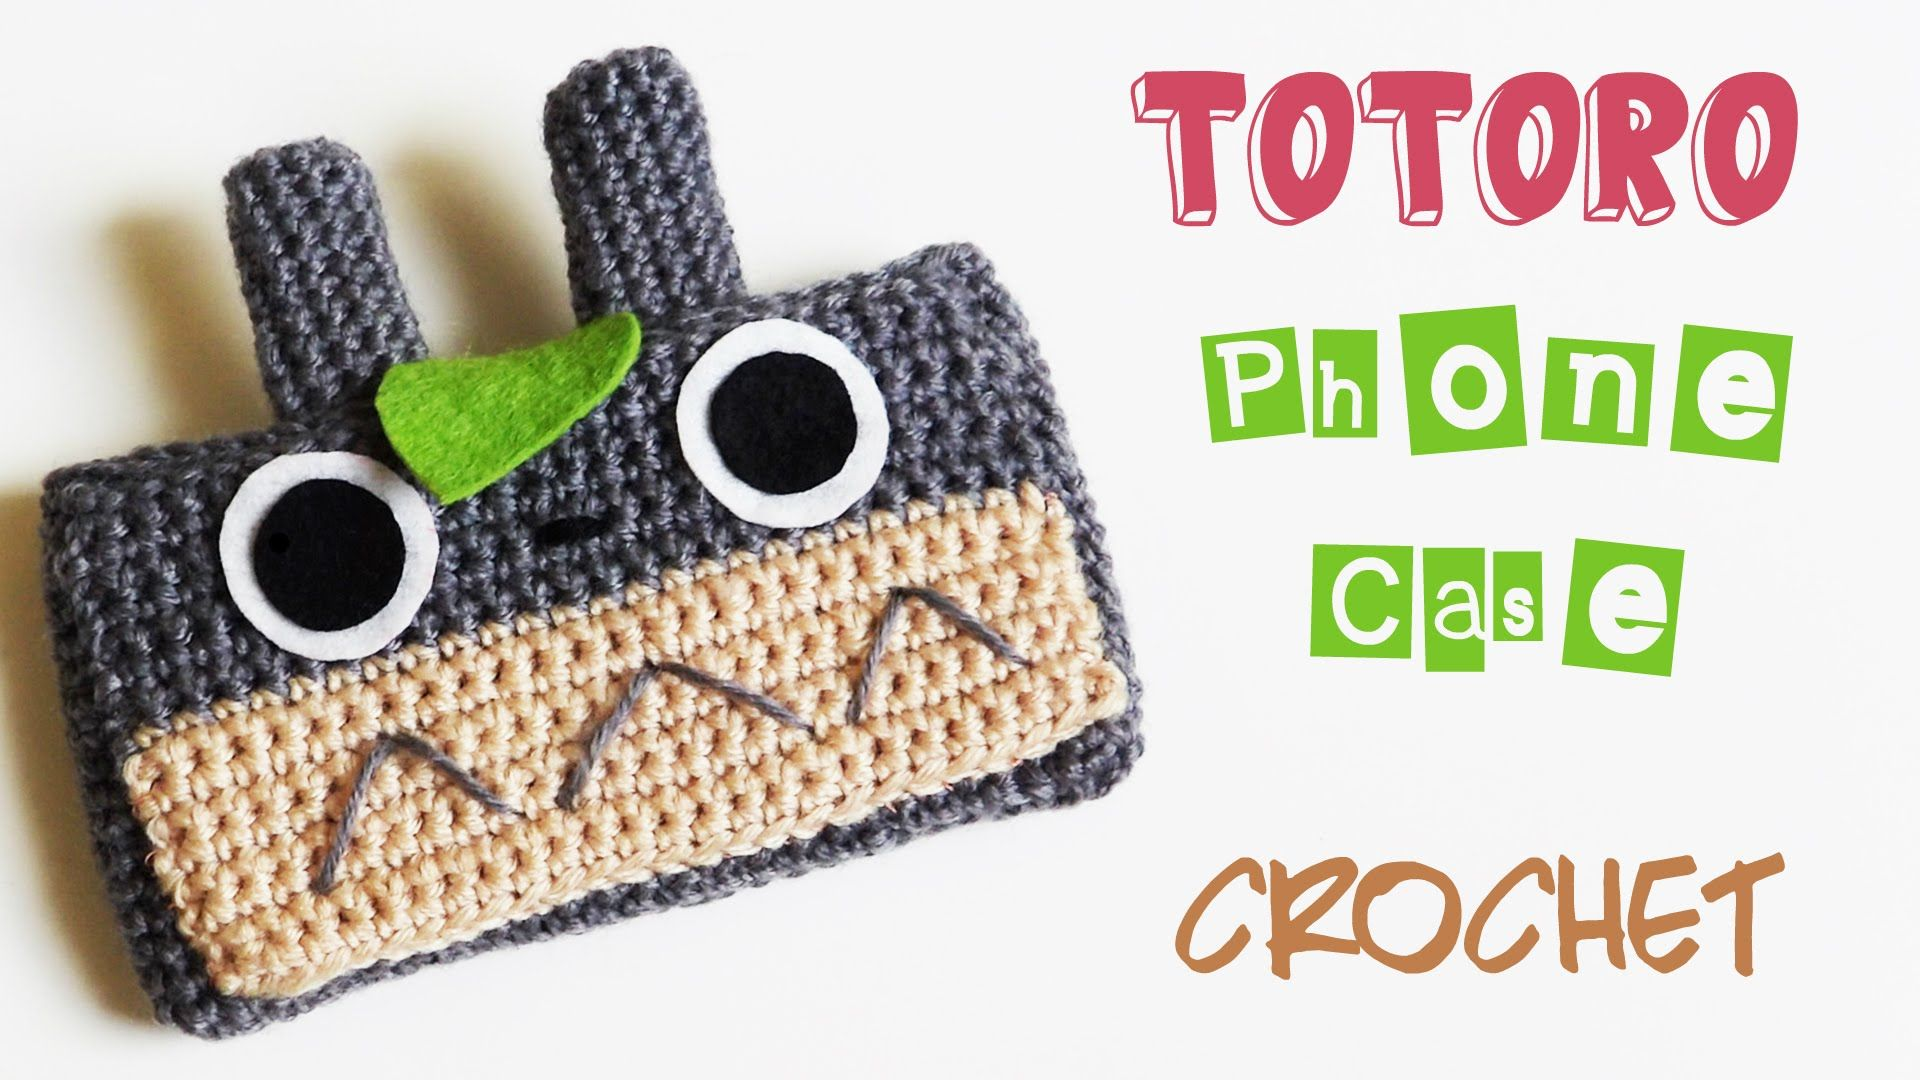 Amigurumi for Beginners: How to Crochet Totoro Phone Case Cover ...